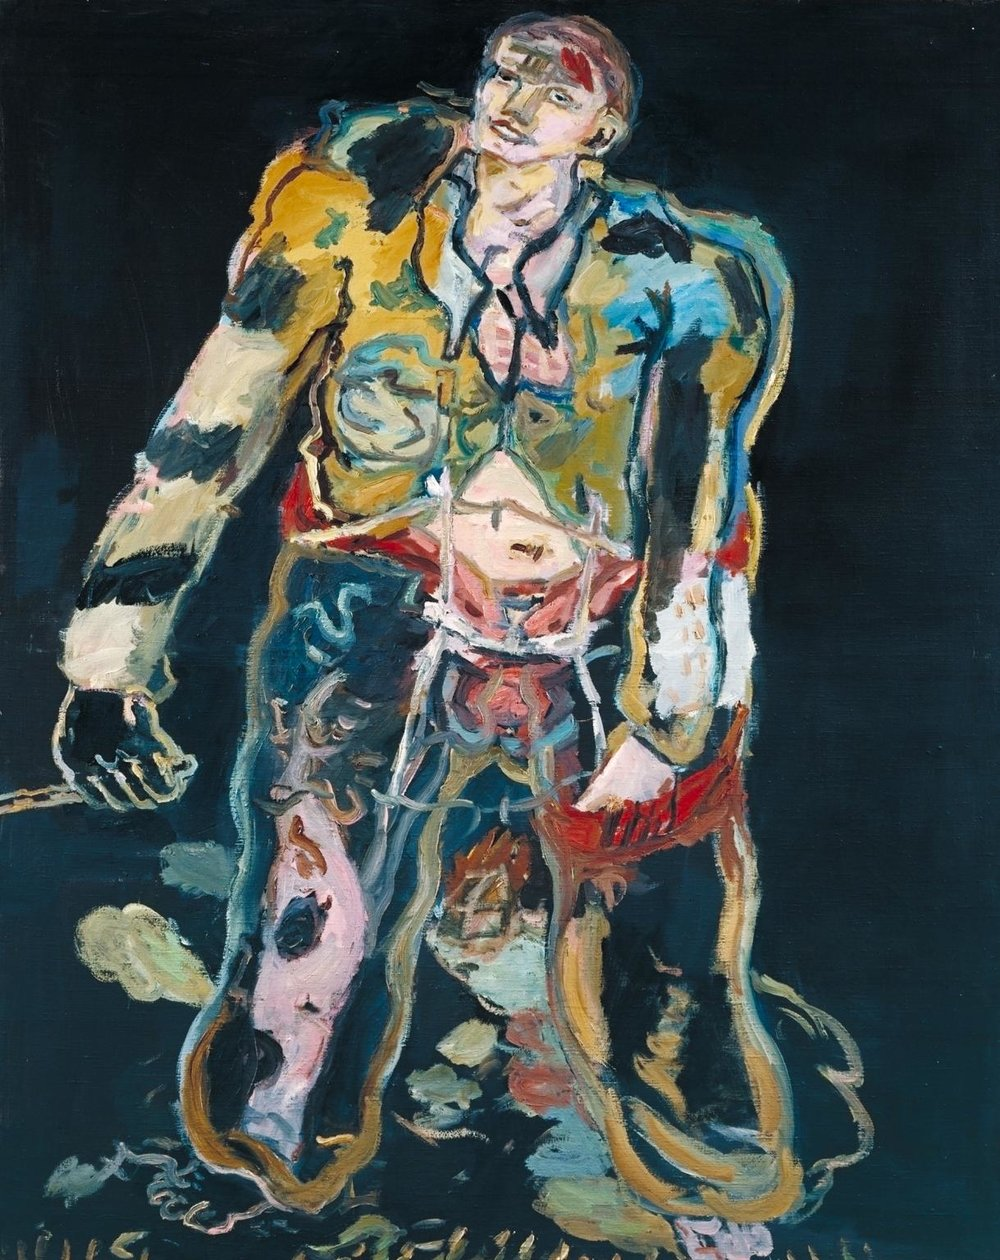 Georg Baselitz - Rebel